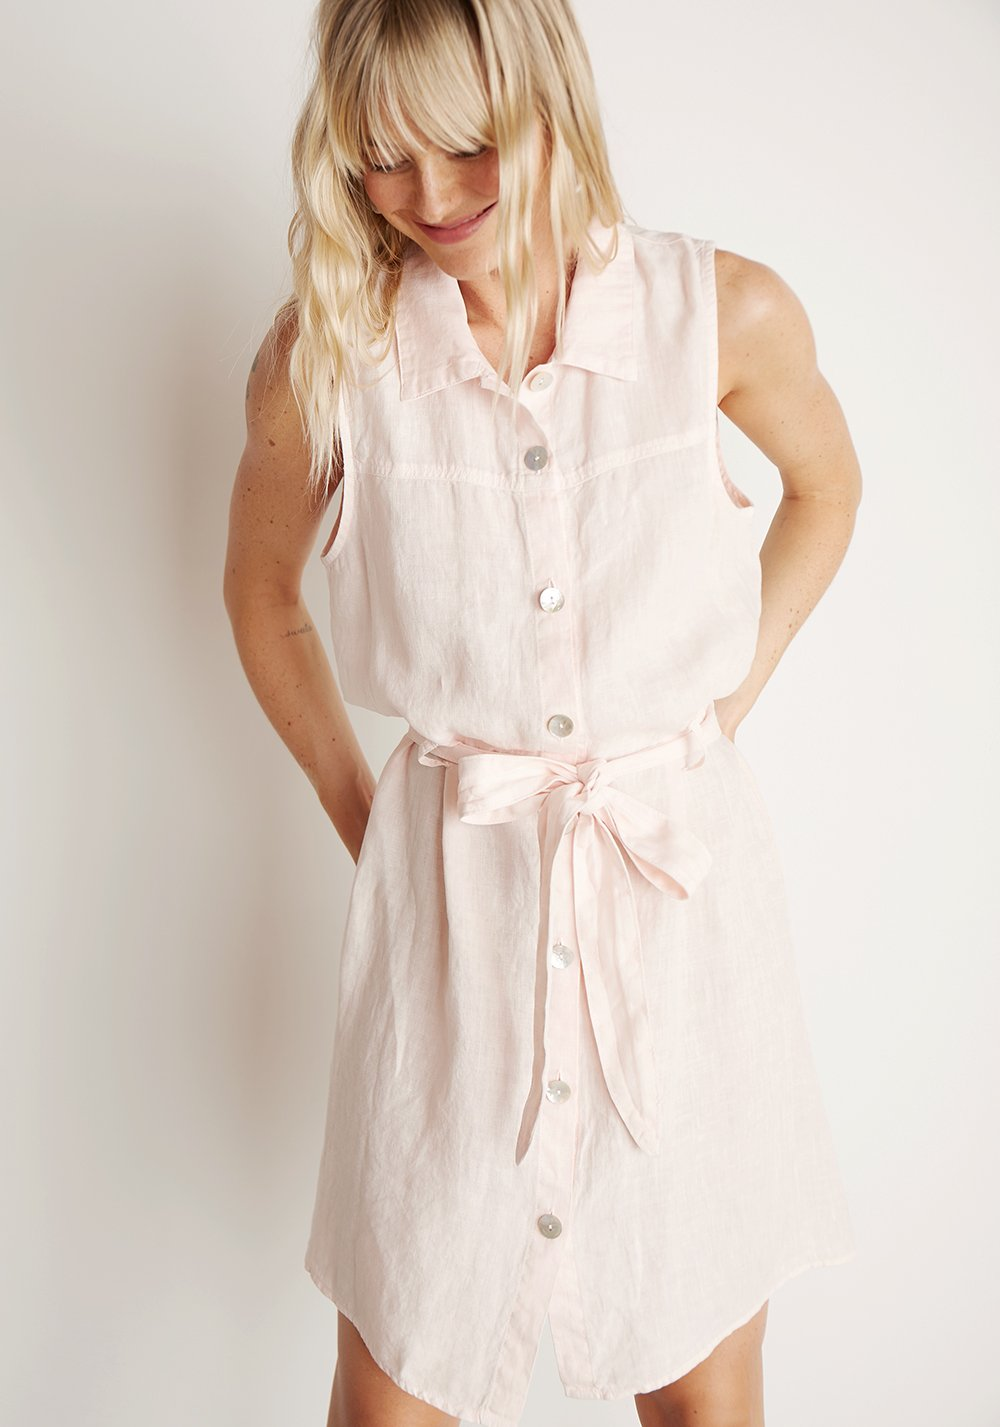 Short Sleeve Shirt Dress - This breezy linen dress makes an instant outfit. Add a sunhat and a pair of wedges for a coastal chic look.